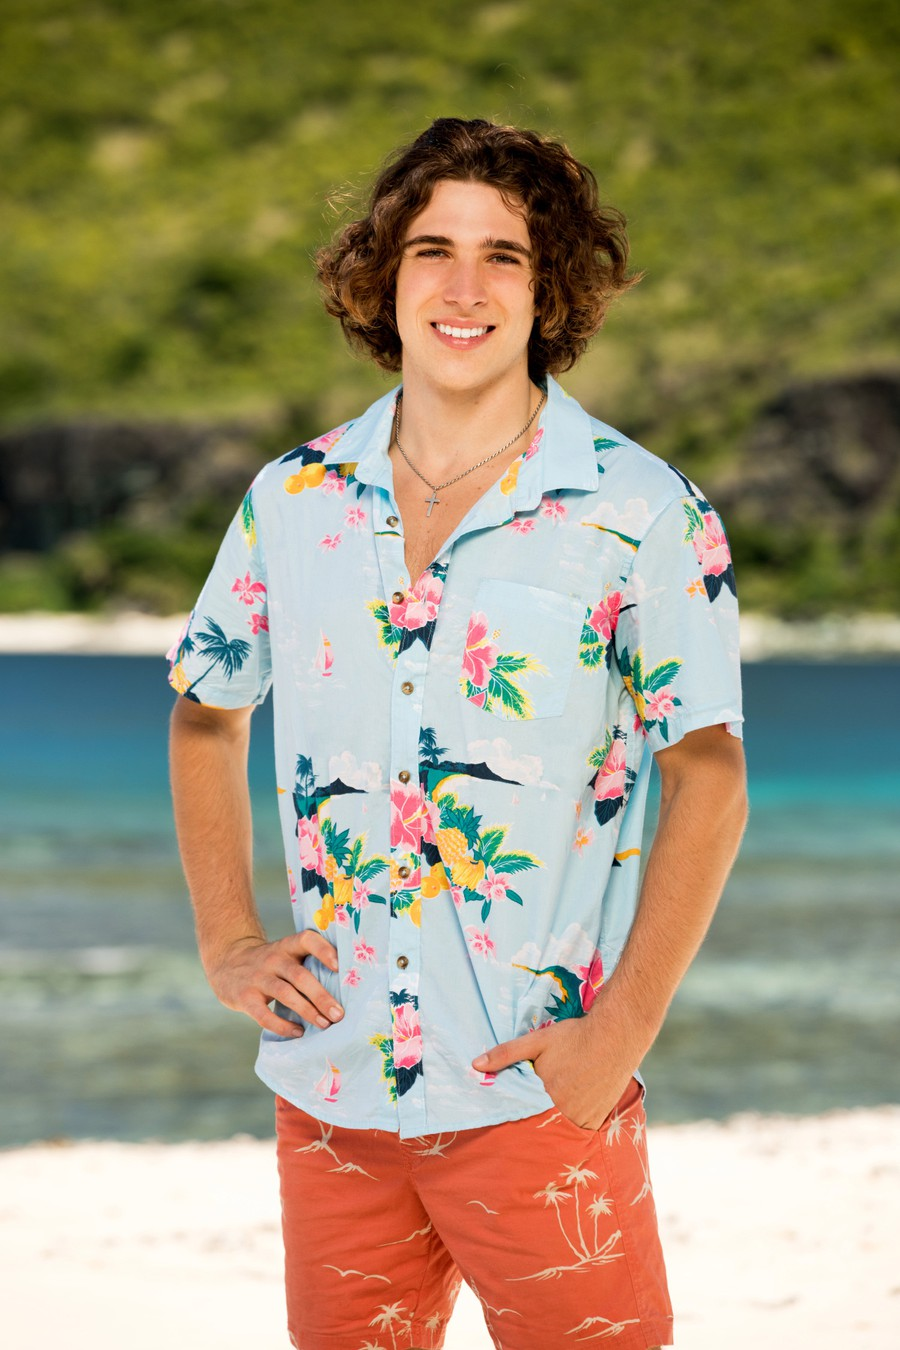 """Xander Hastings, """"Survivor"""" contestant and UChicago third year, aims to be a strong contestant on the show."""